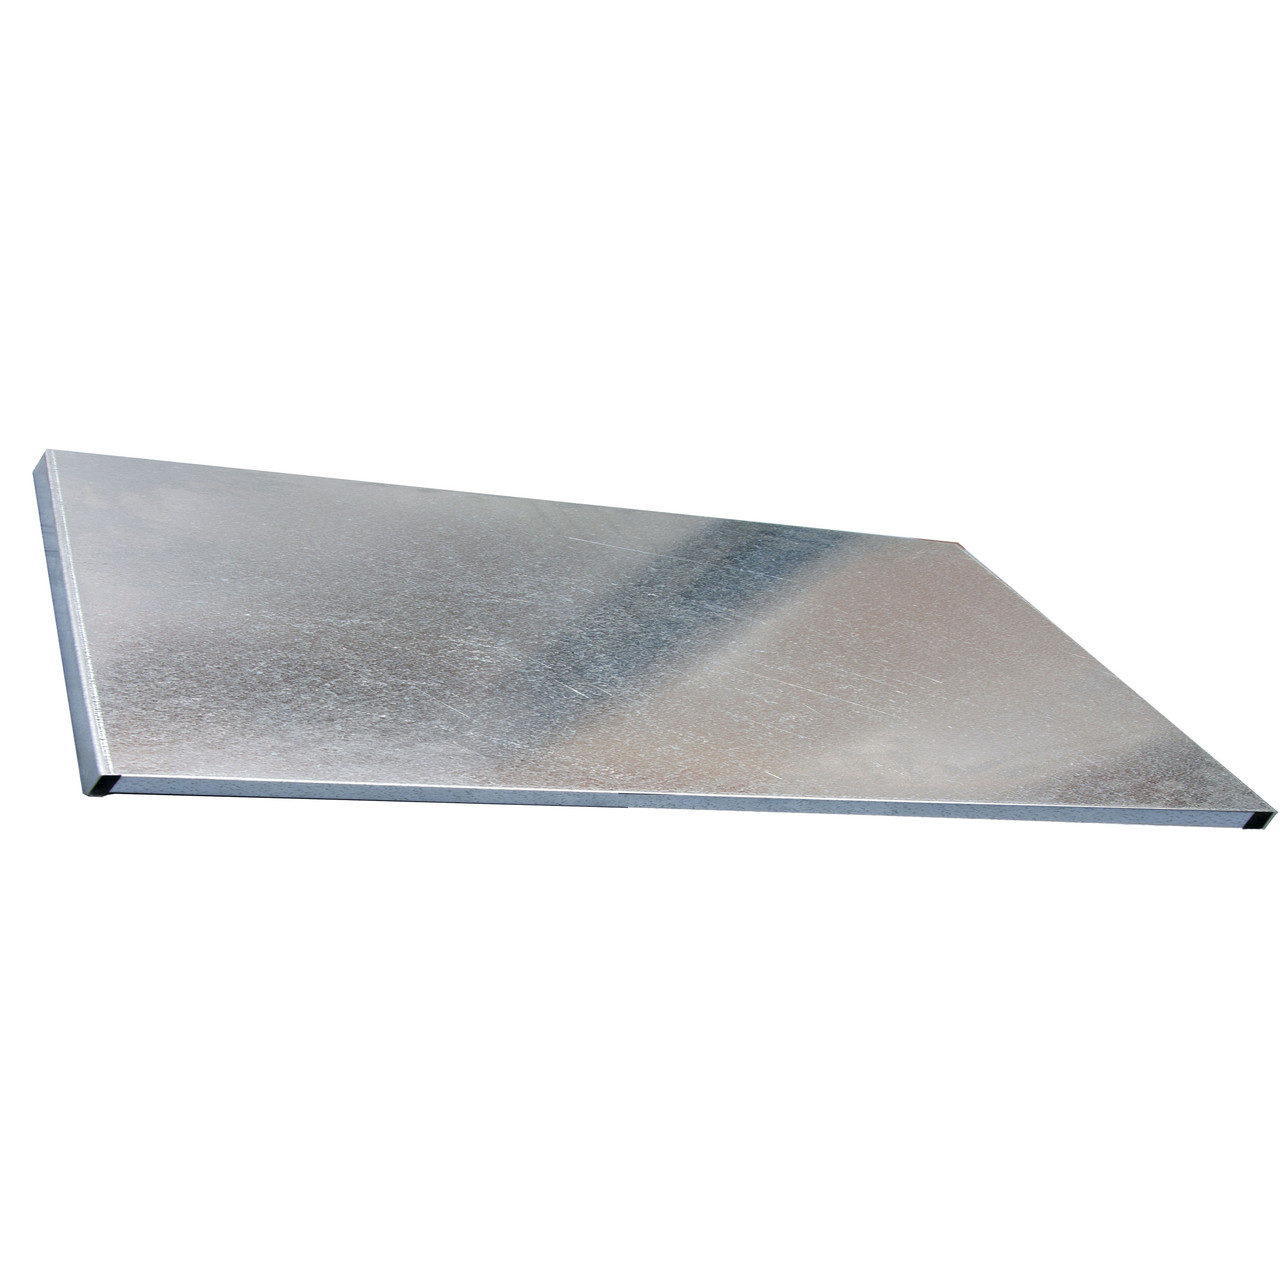 Durham Optional shelf for flammable storage cabinets , 39-11/16 x 29-3/16